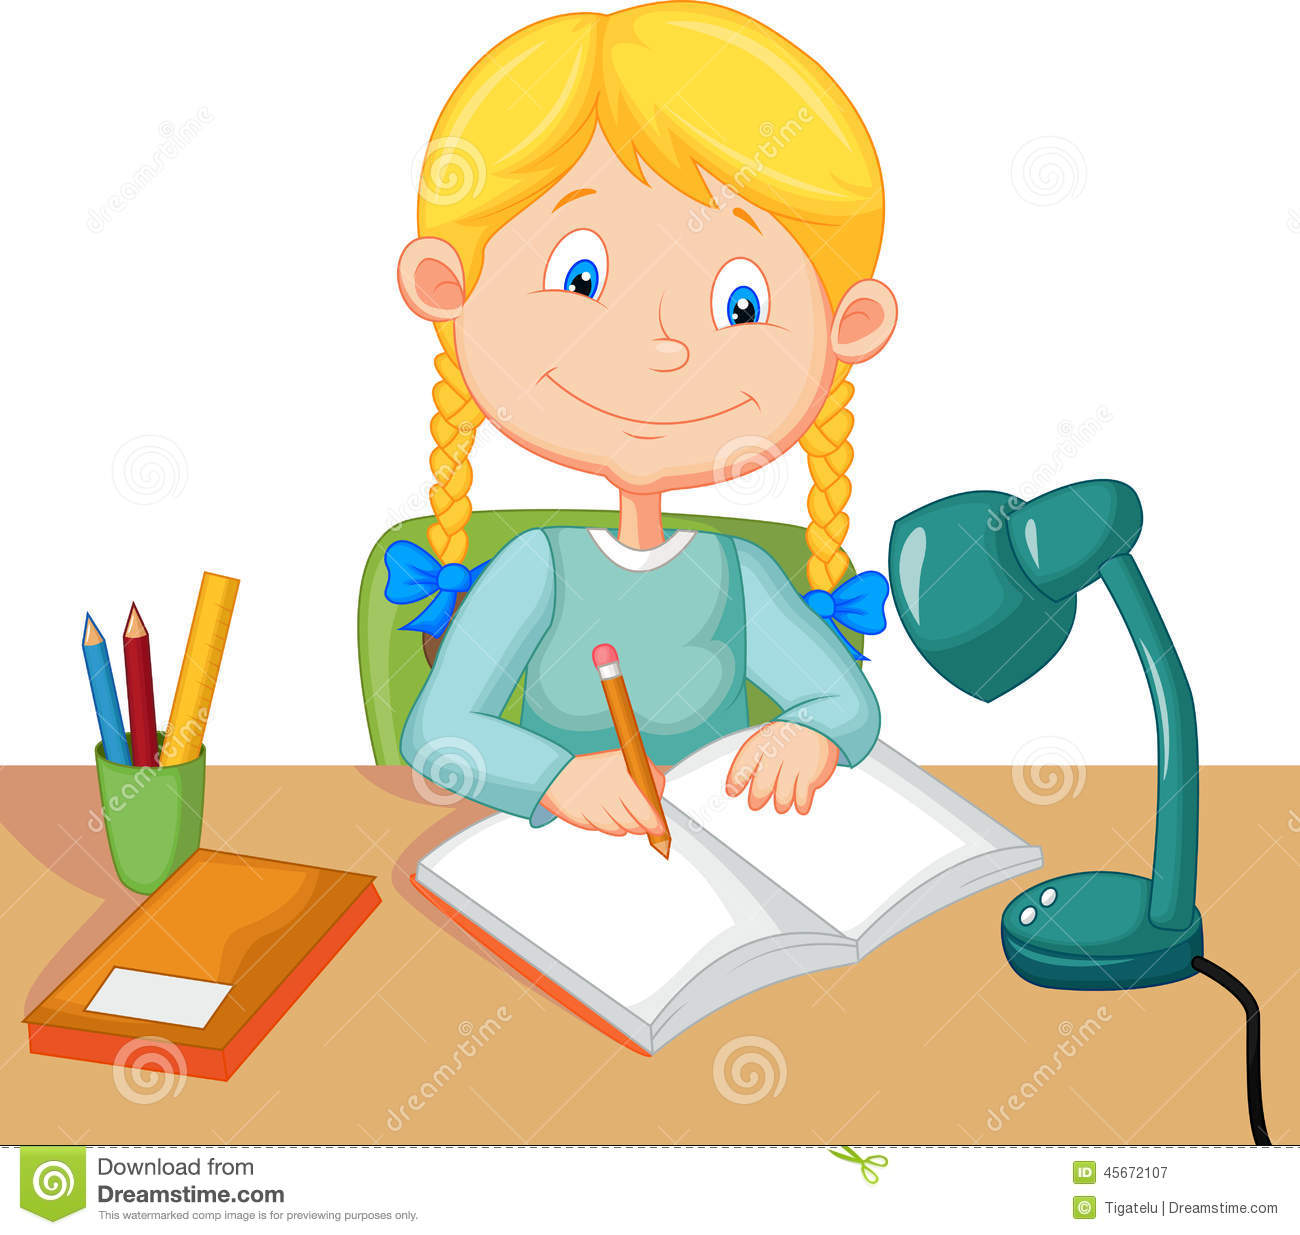 little-girl-studying-illustration-45672107.jpg